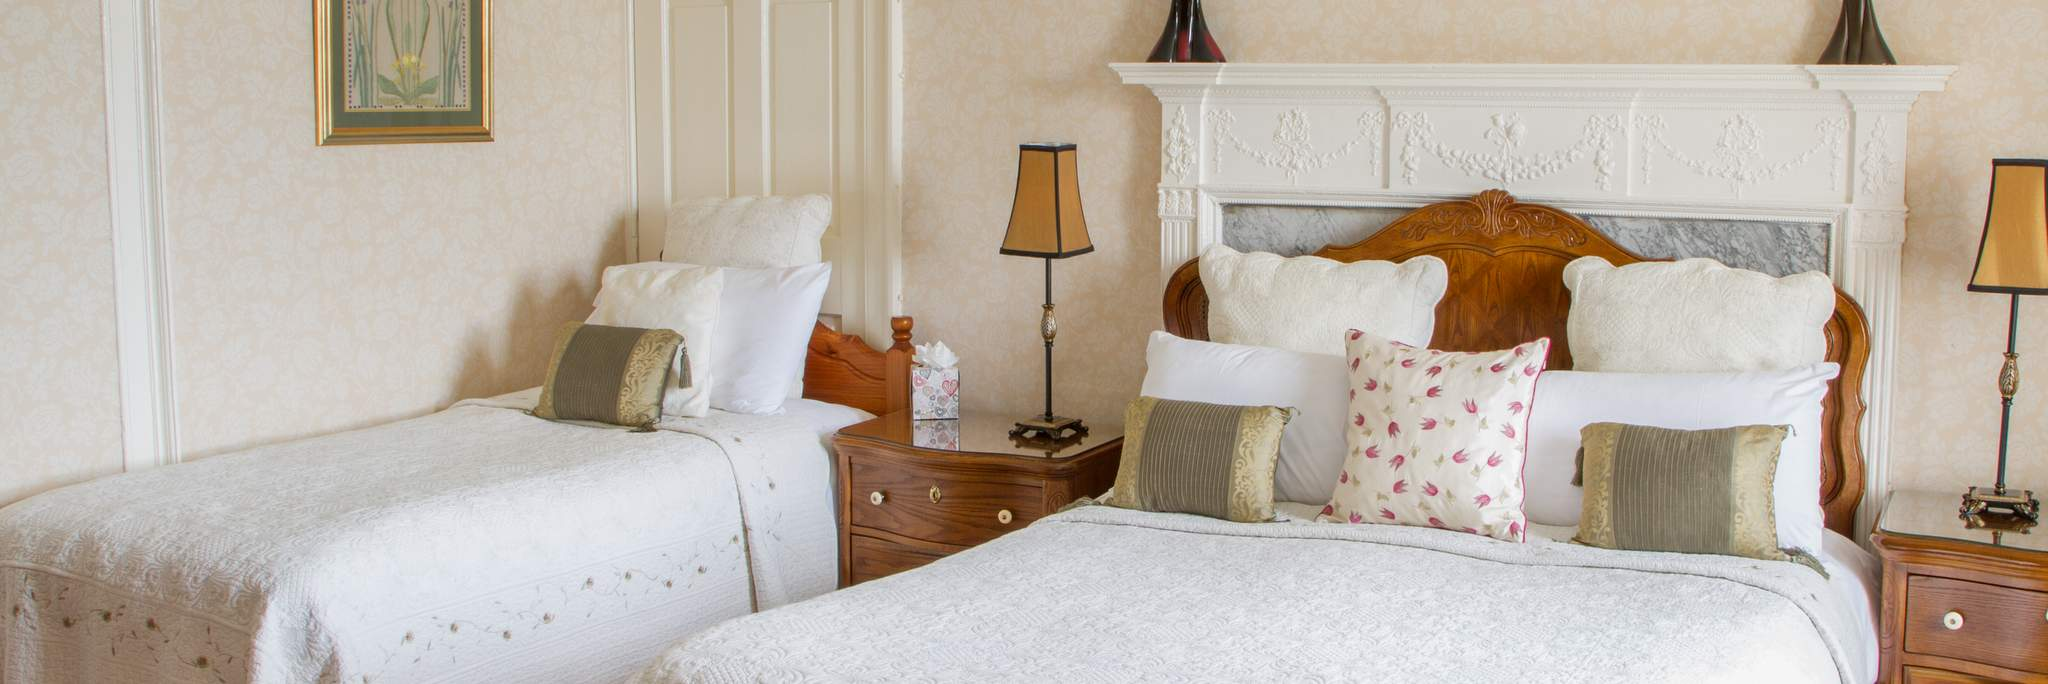 Bed and Breakfasts in Angus and Dundee